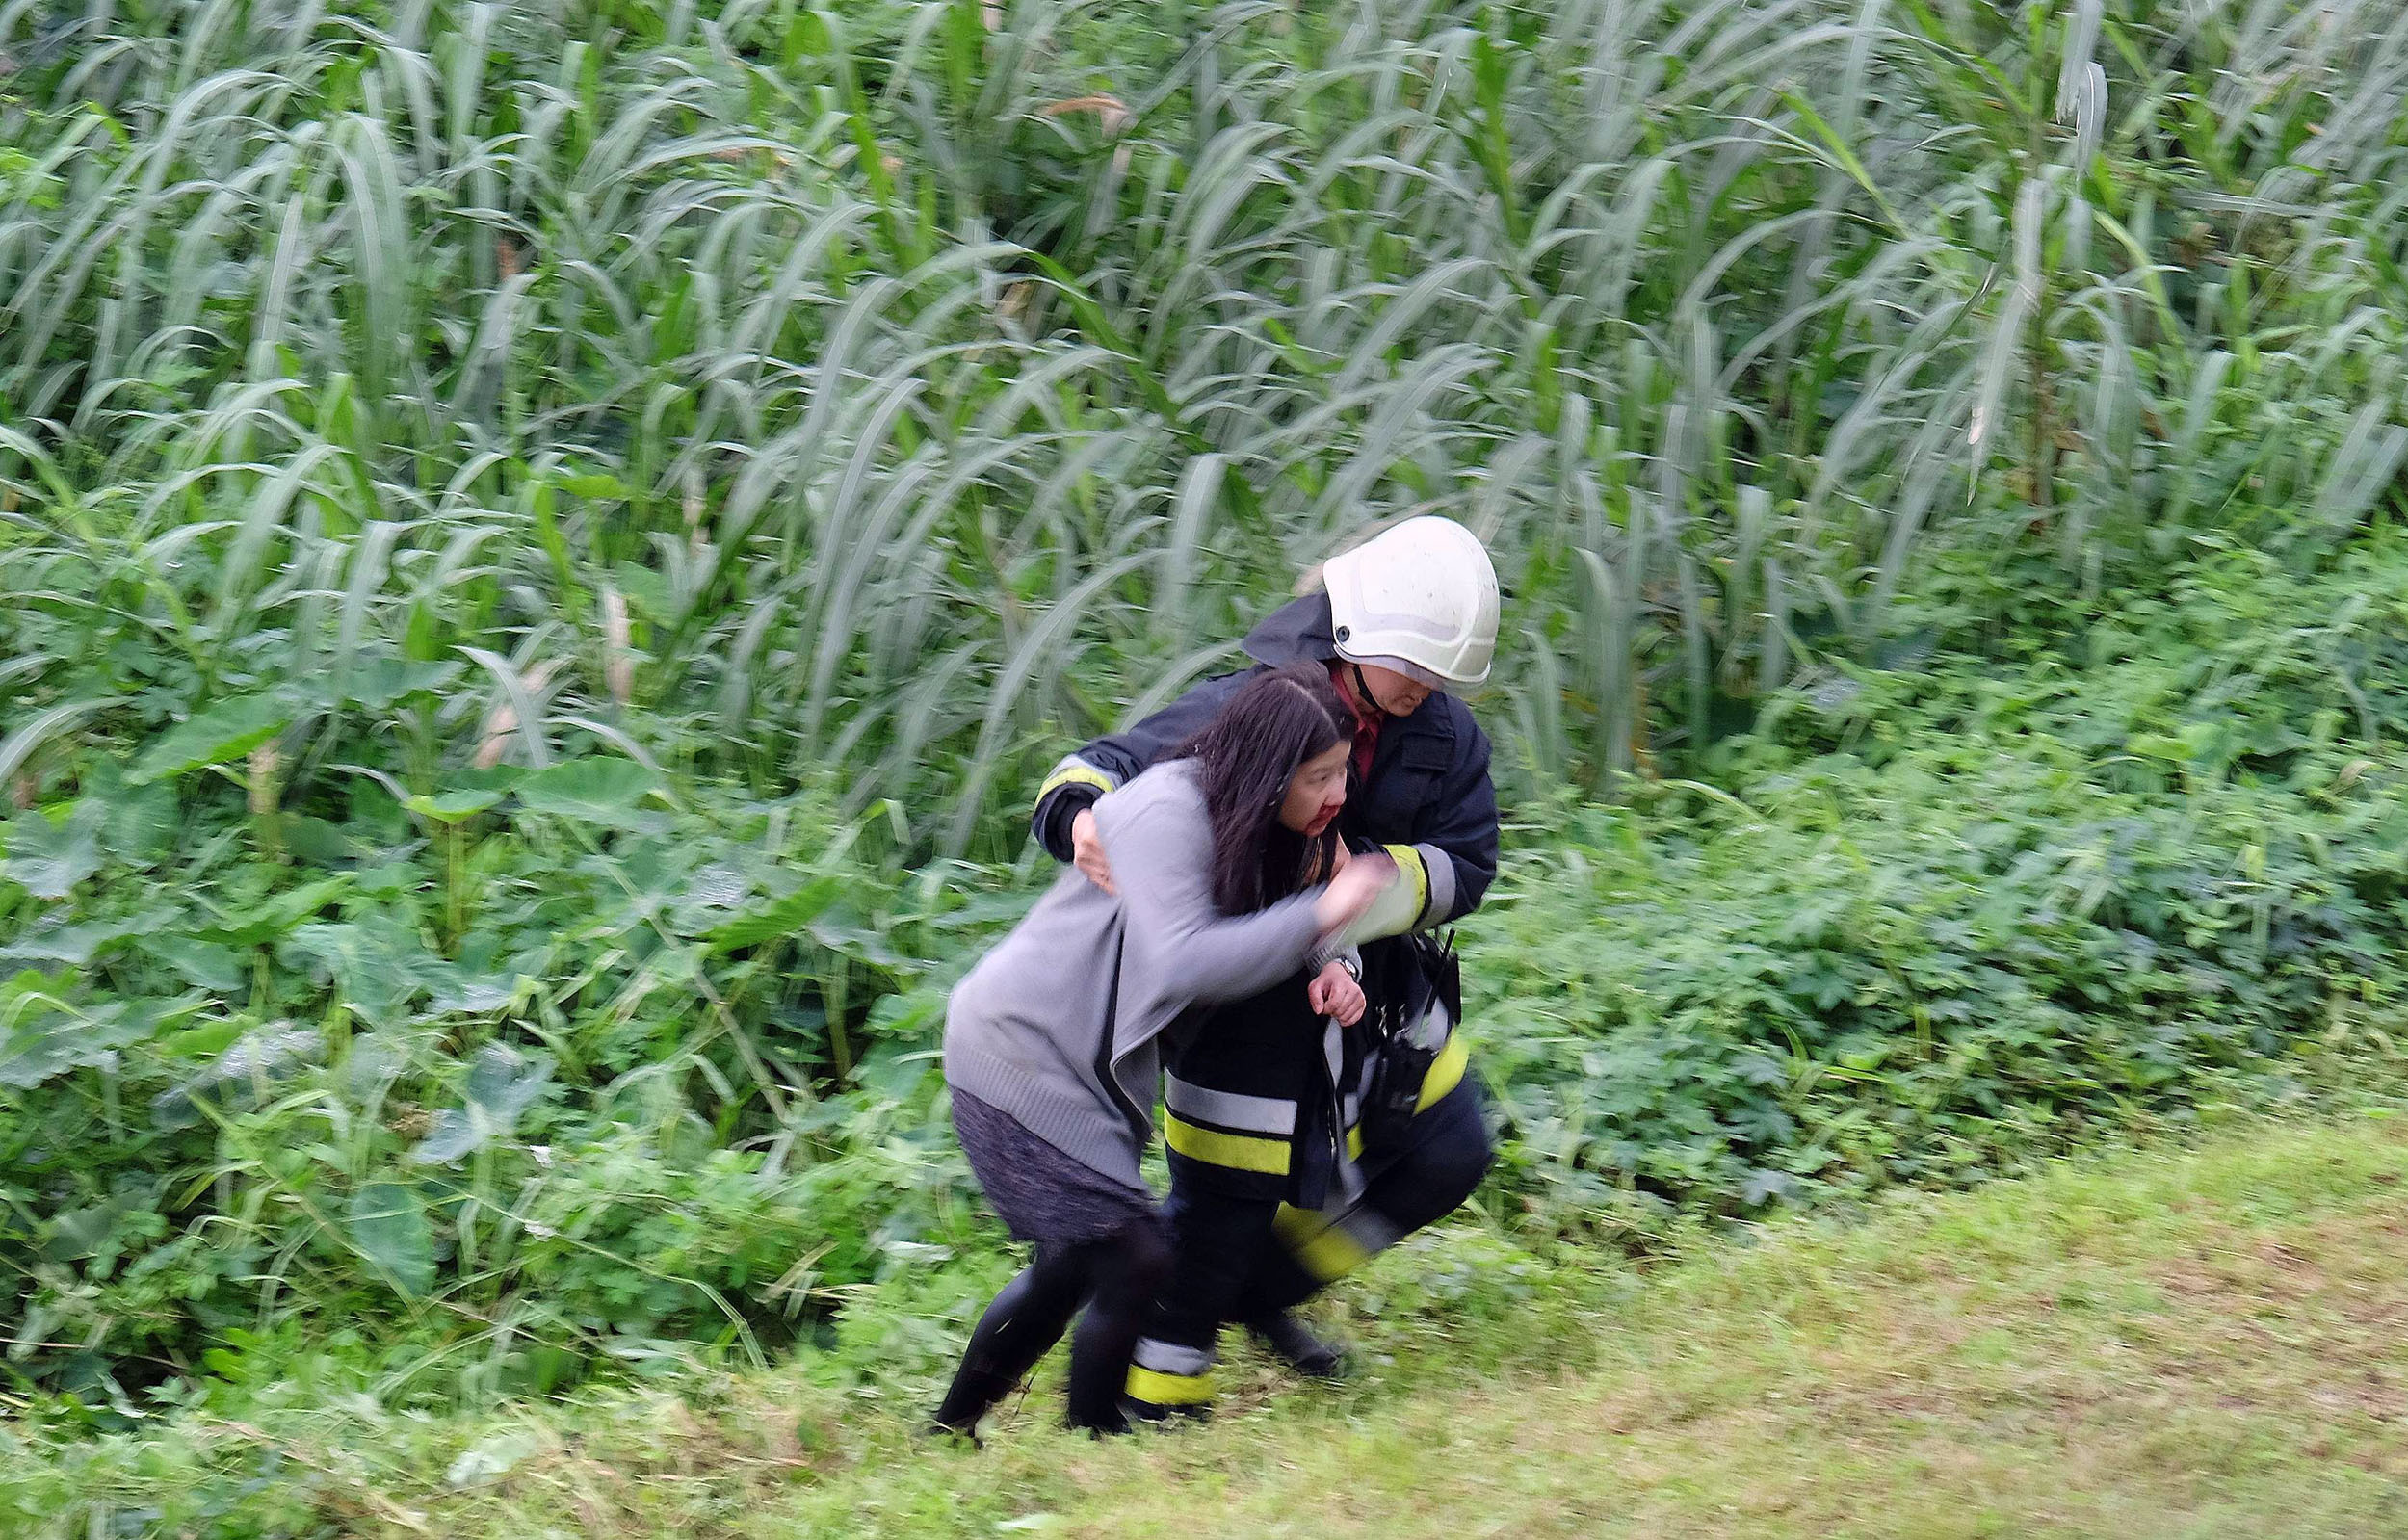 An injured passenger (L) is escorted by emergency personnel up the river bank after a TransAsia ATR 72-600 turboprop plane crash-landed into the Keelung river outside Taiwan's capital Taipei in New Taipei City on Feb. 4, 2015.